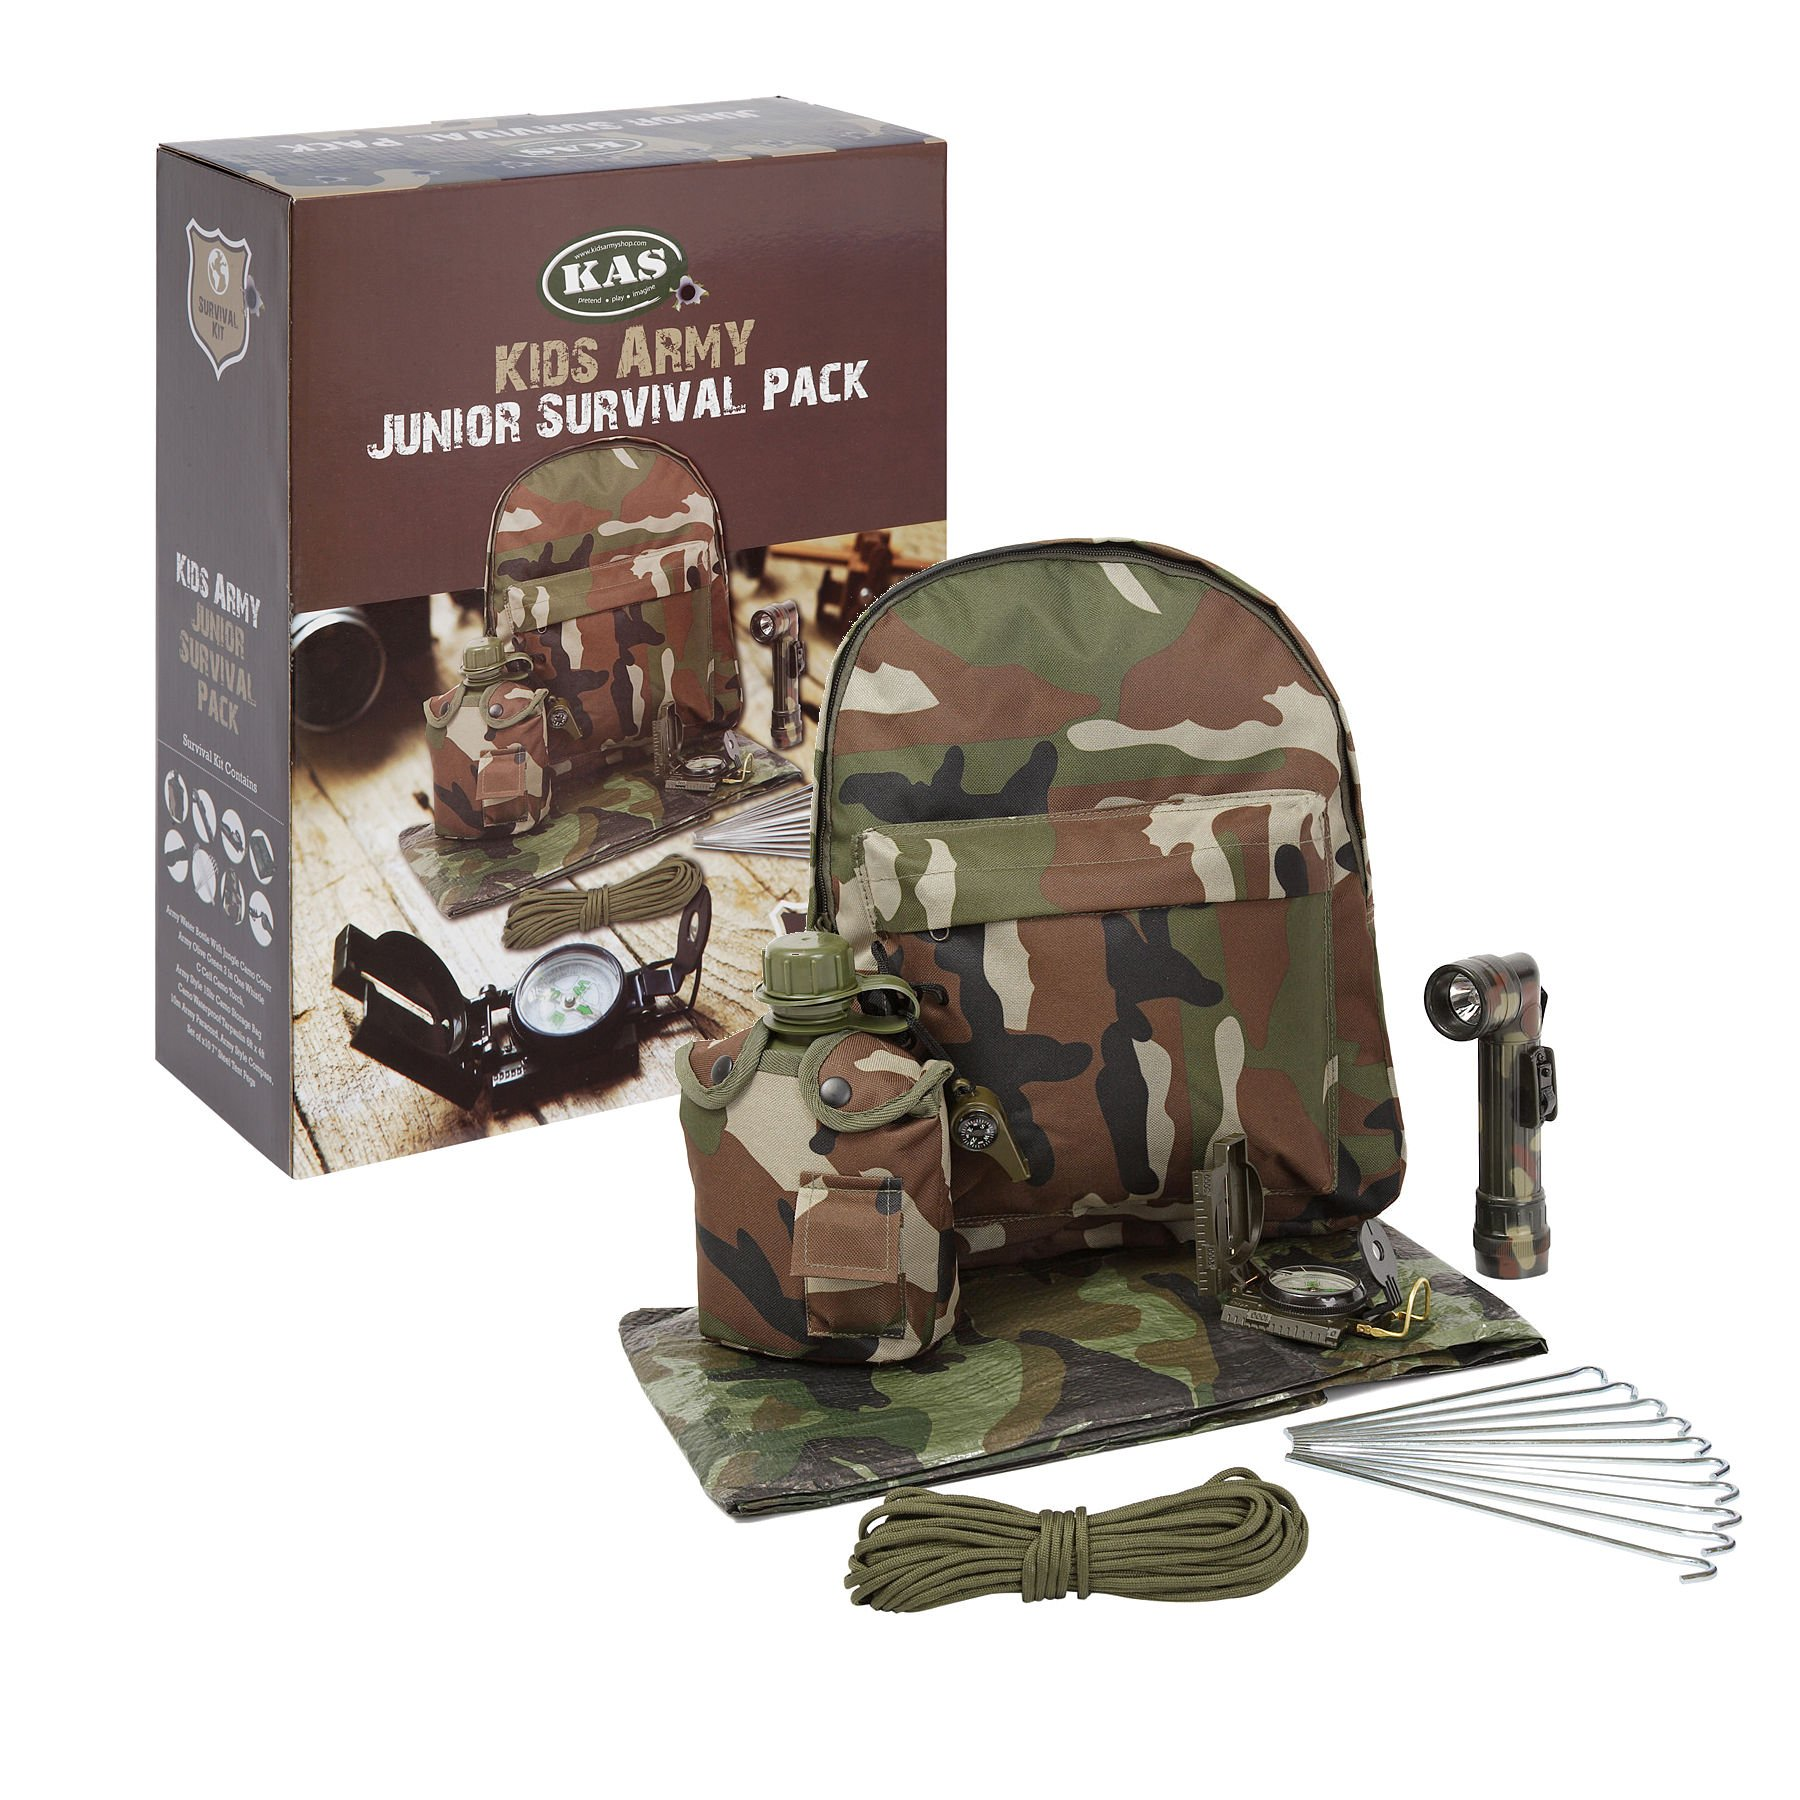 KAS Kids Army Camouflage Junior Survival Pack - Kids Army Roleplay by KAS